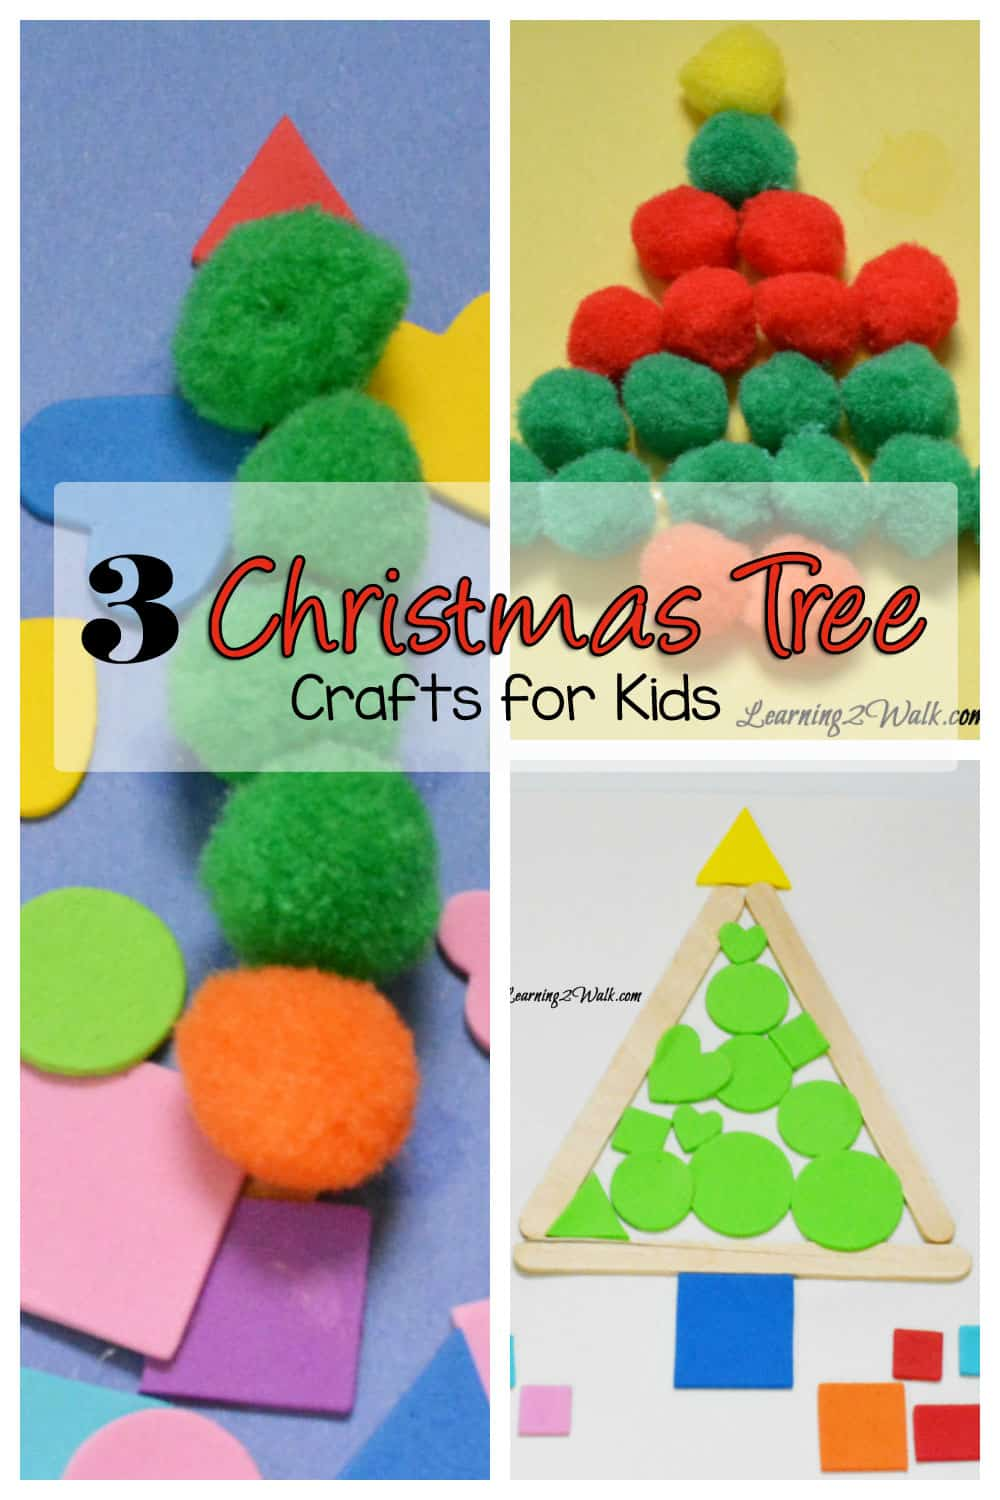 3 Easy Christmas Crafts for Kids with pom poms, stickers and more